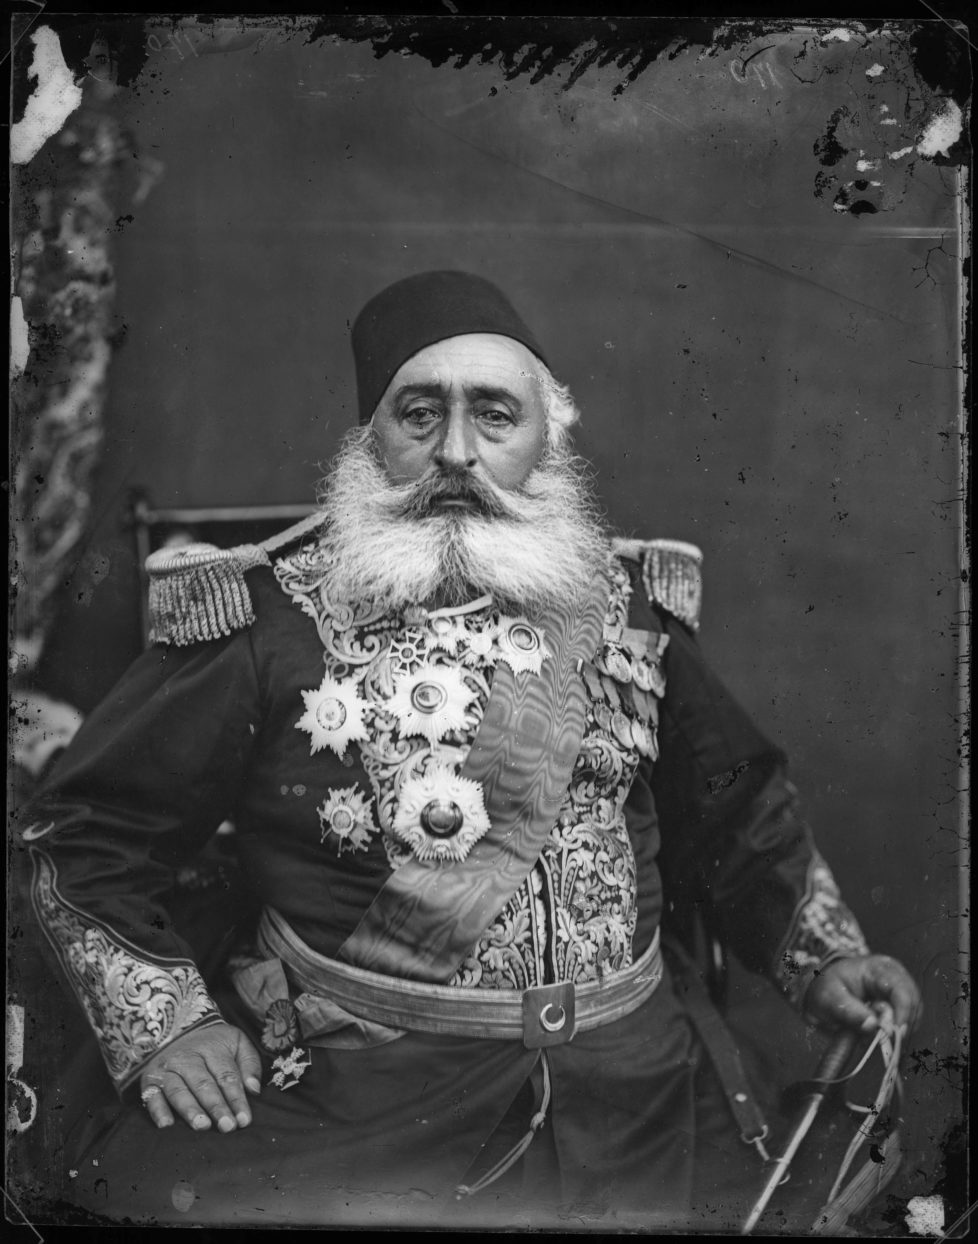 Ismail Pasha, 1875, Pietro Marubi, wet plate © Marubi National Museum of Photography, Shkodër